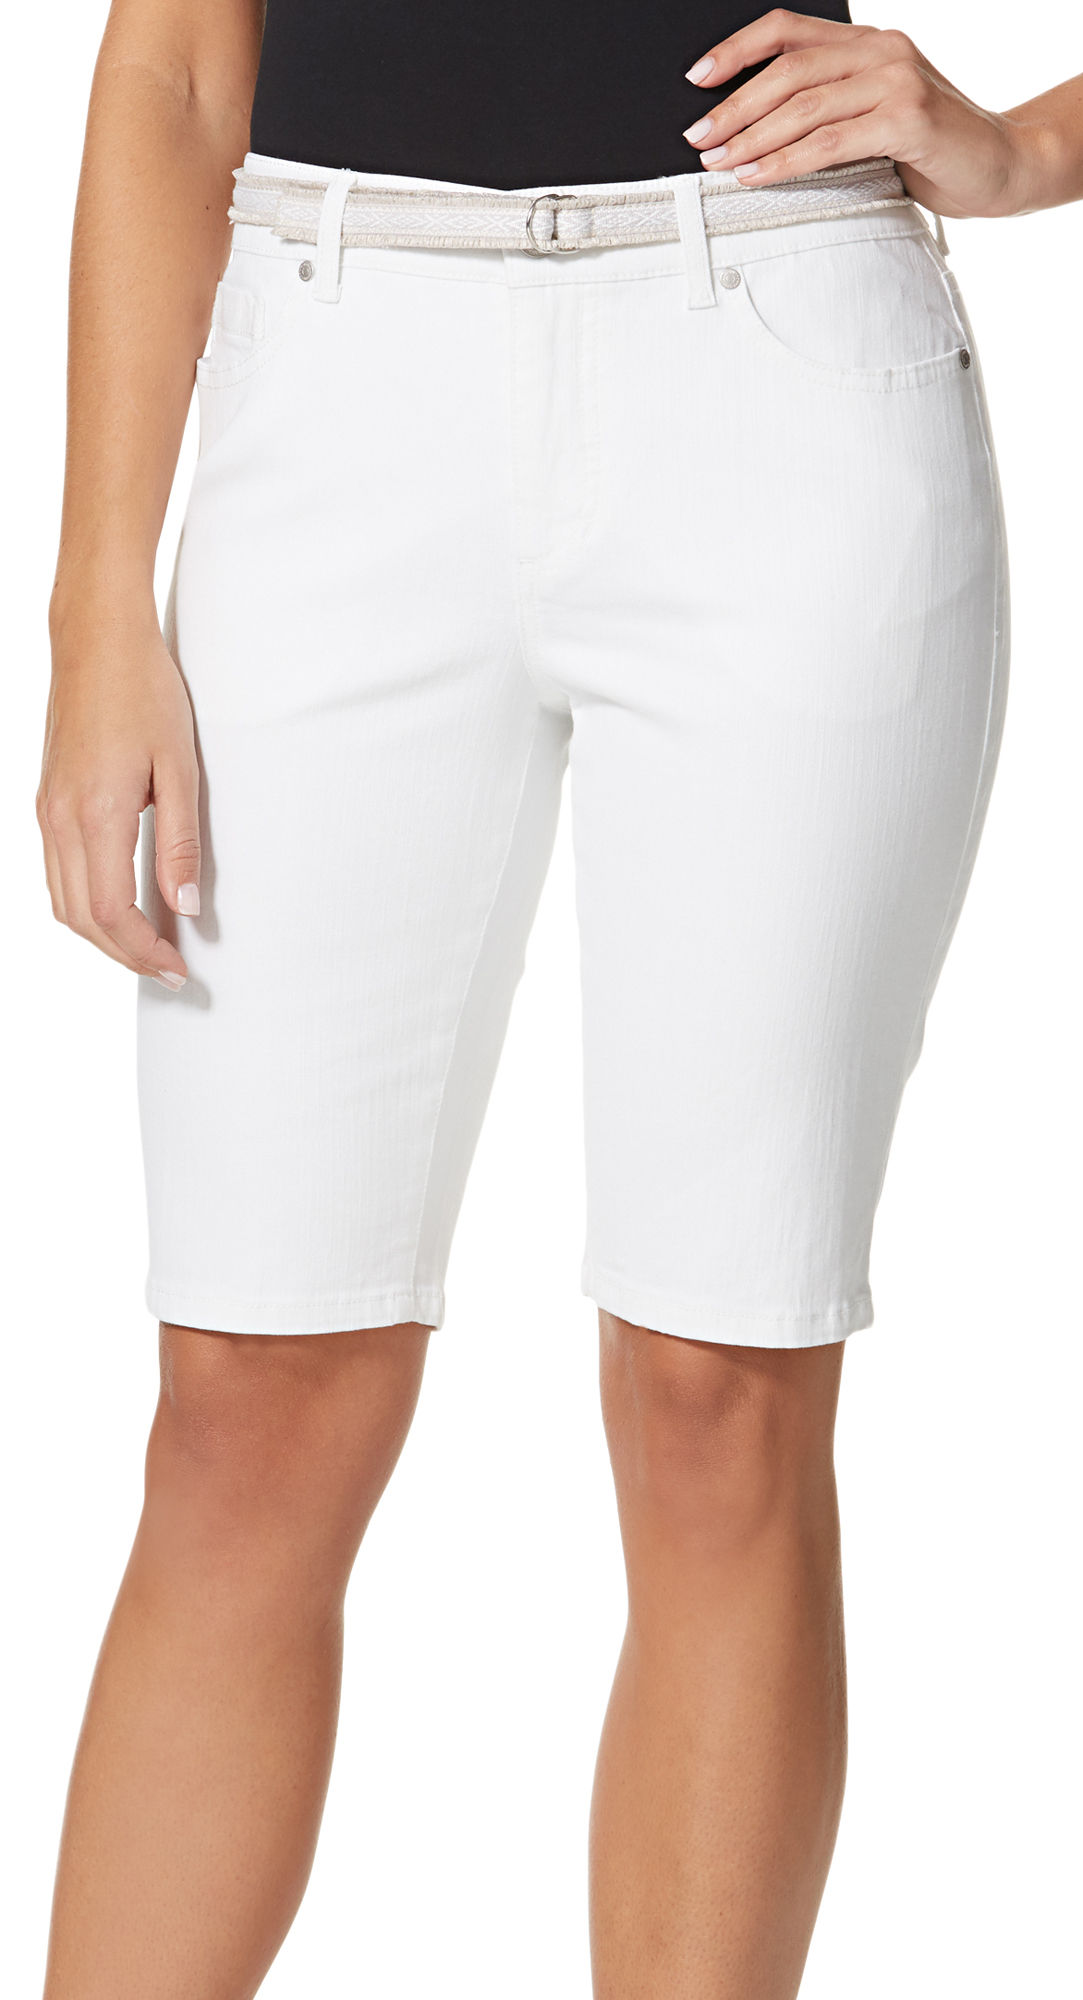 Create a wide array of ensembles with essential bermuda shorts for women from Old Navy. Classic Everyday Looks. With these classic bermuda shorts for women from Old Navy the possibilities are endless for creating multiple stylish outfits.